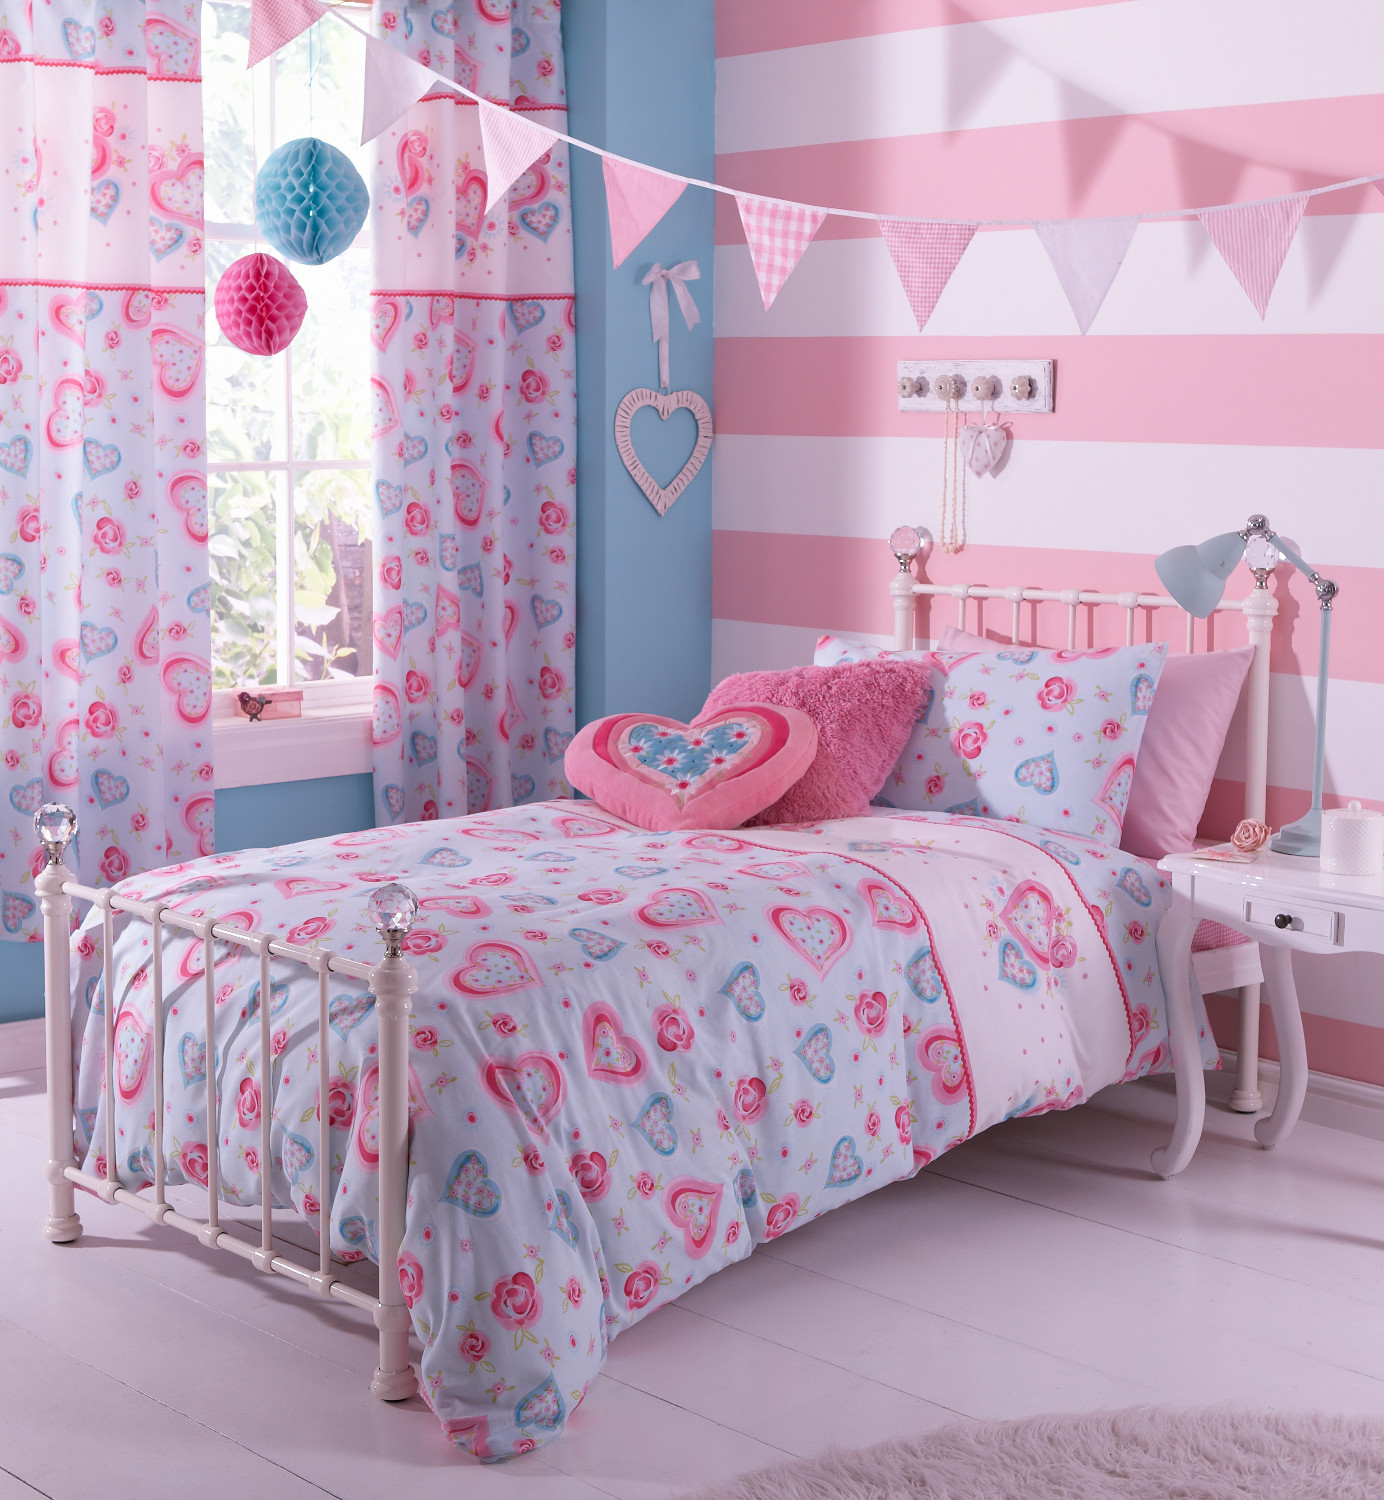 h bsche herzchen blumen bettw sche catherine lansfield m dchen bettw scheset ebay. Black Bedroom Furniture Sets. Home Design Ideas